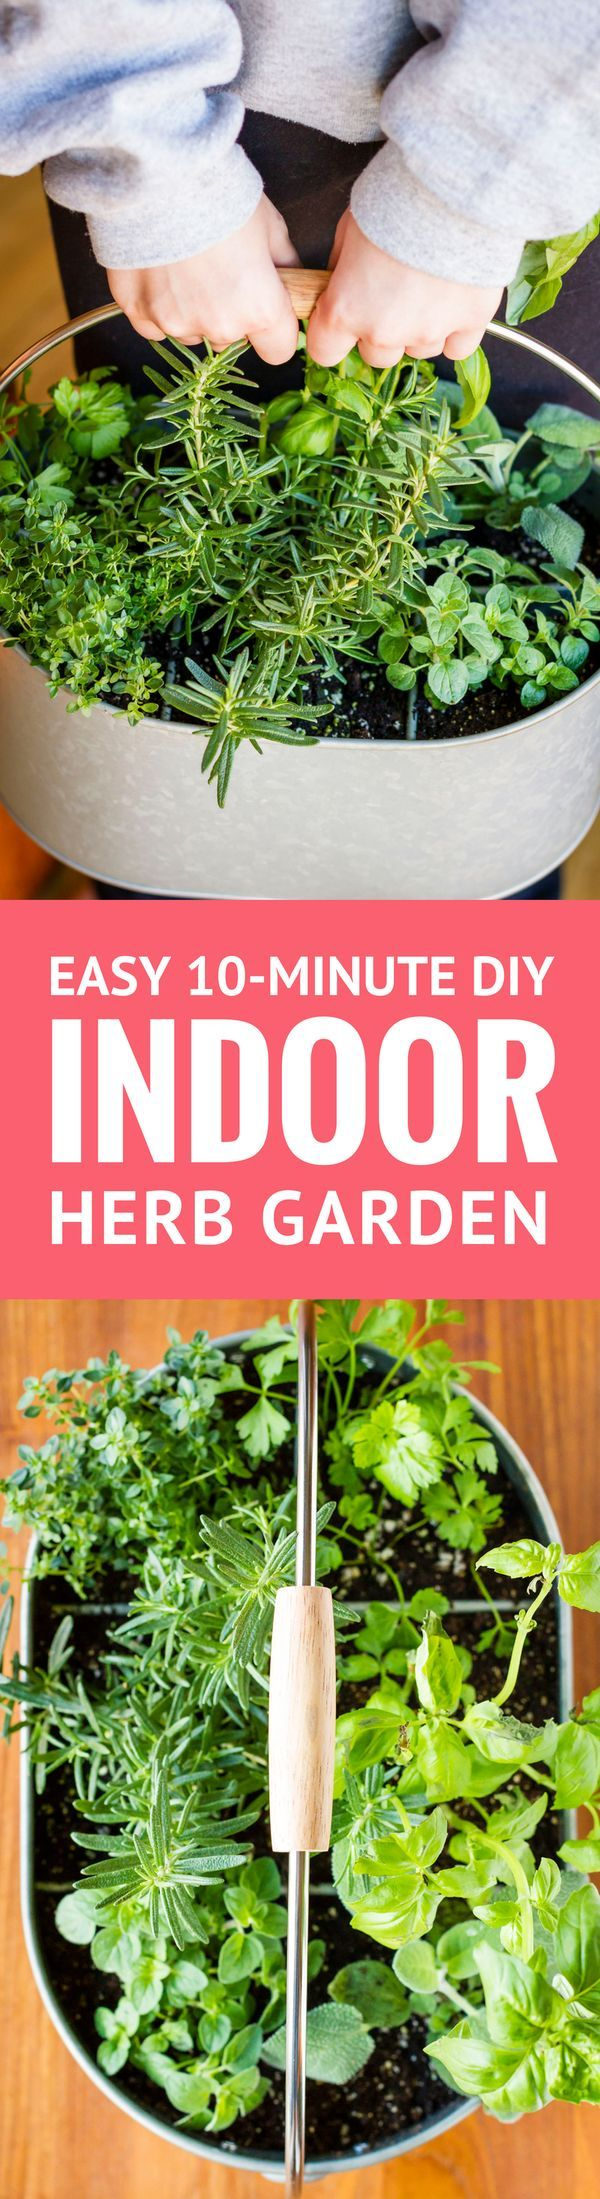 Chia pet herb garden - Easy Indoor Herb Garden I Was An Indoor Container Gardening Failure Until I